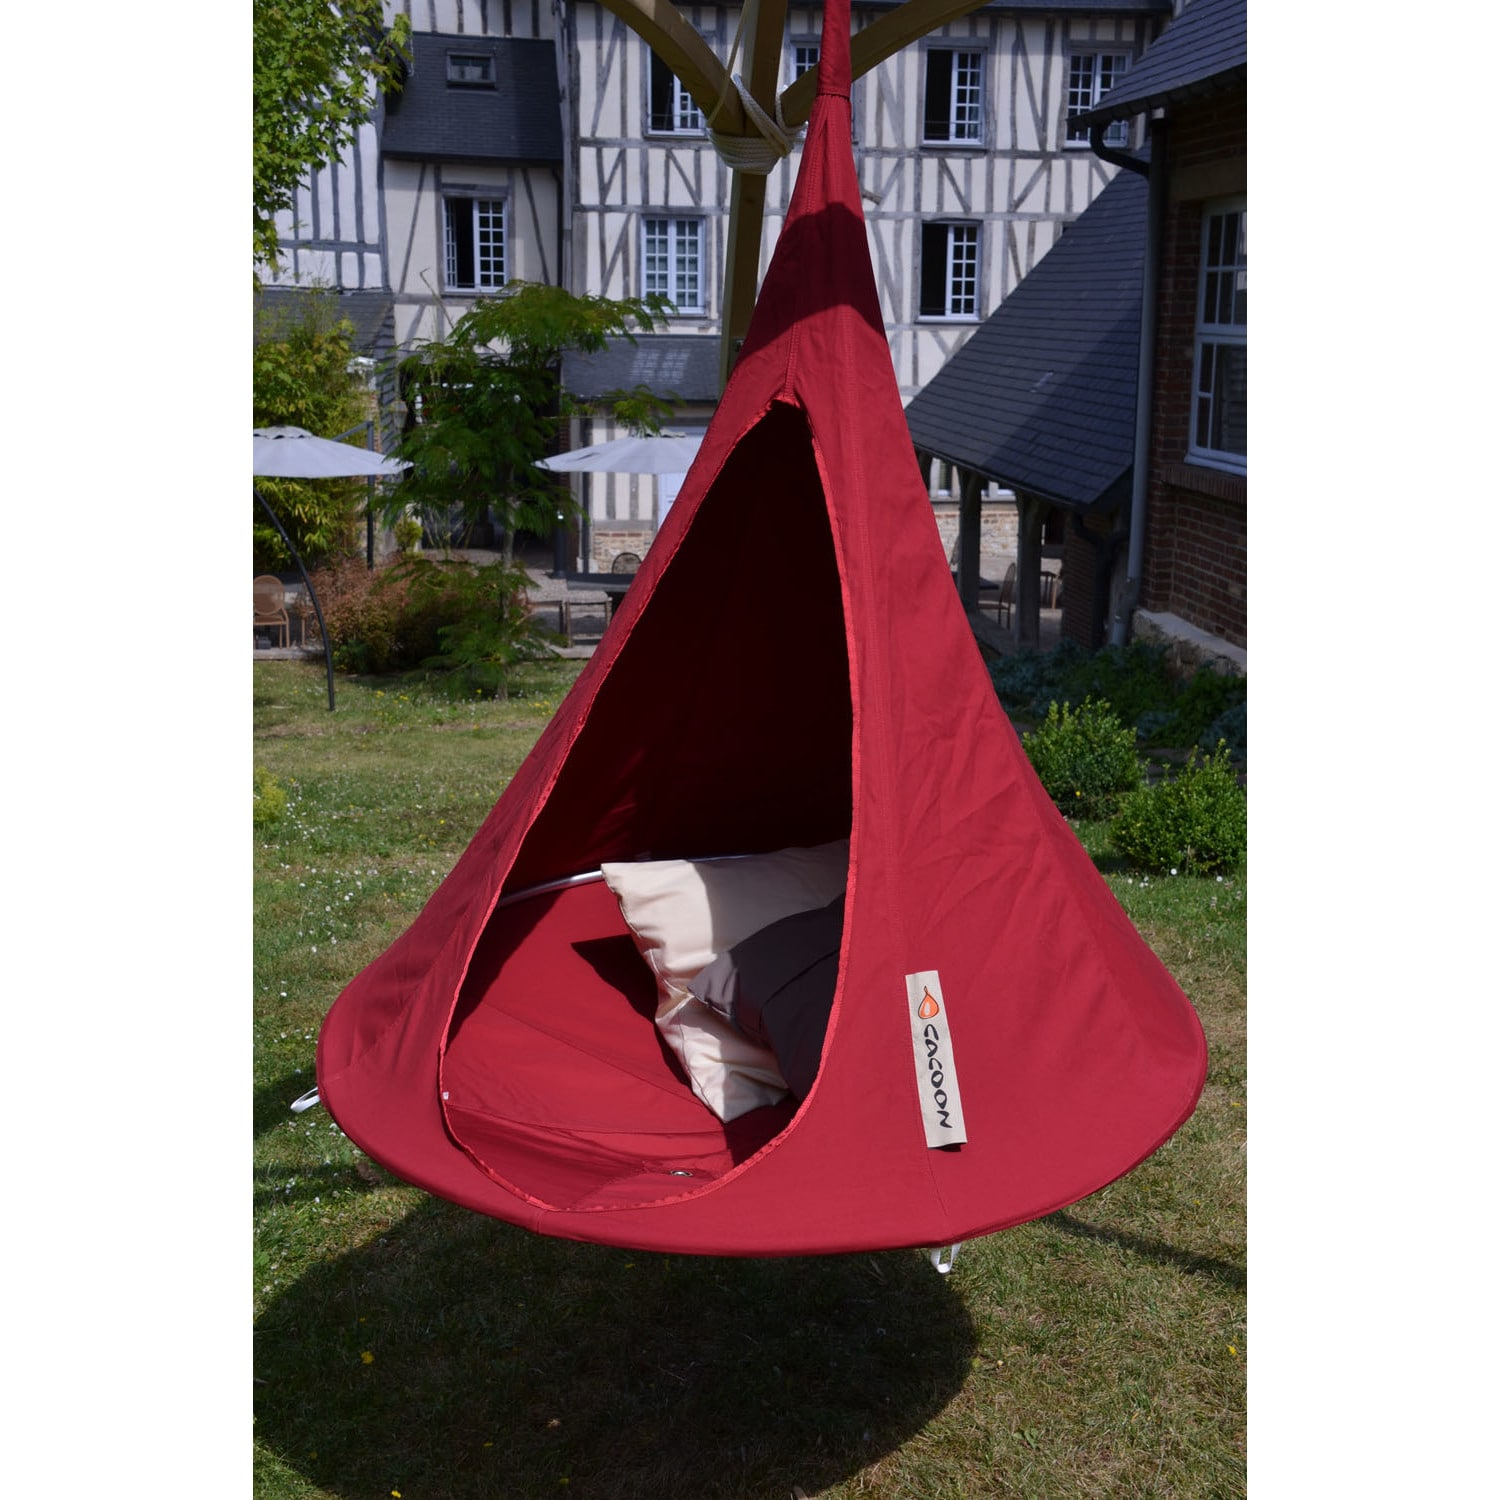 Cacoon Hanging Chair Vivere Home Garden Kids Bonsai Hanging Chair